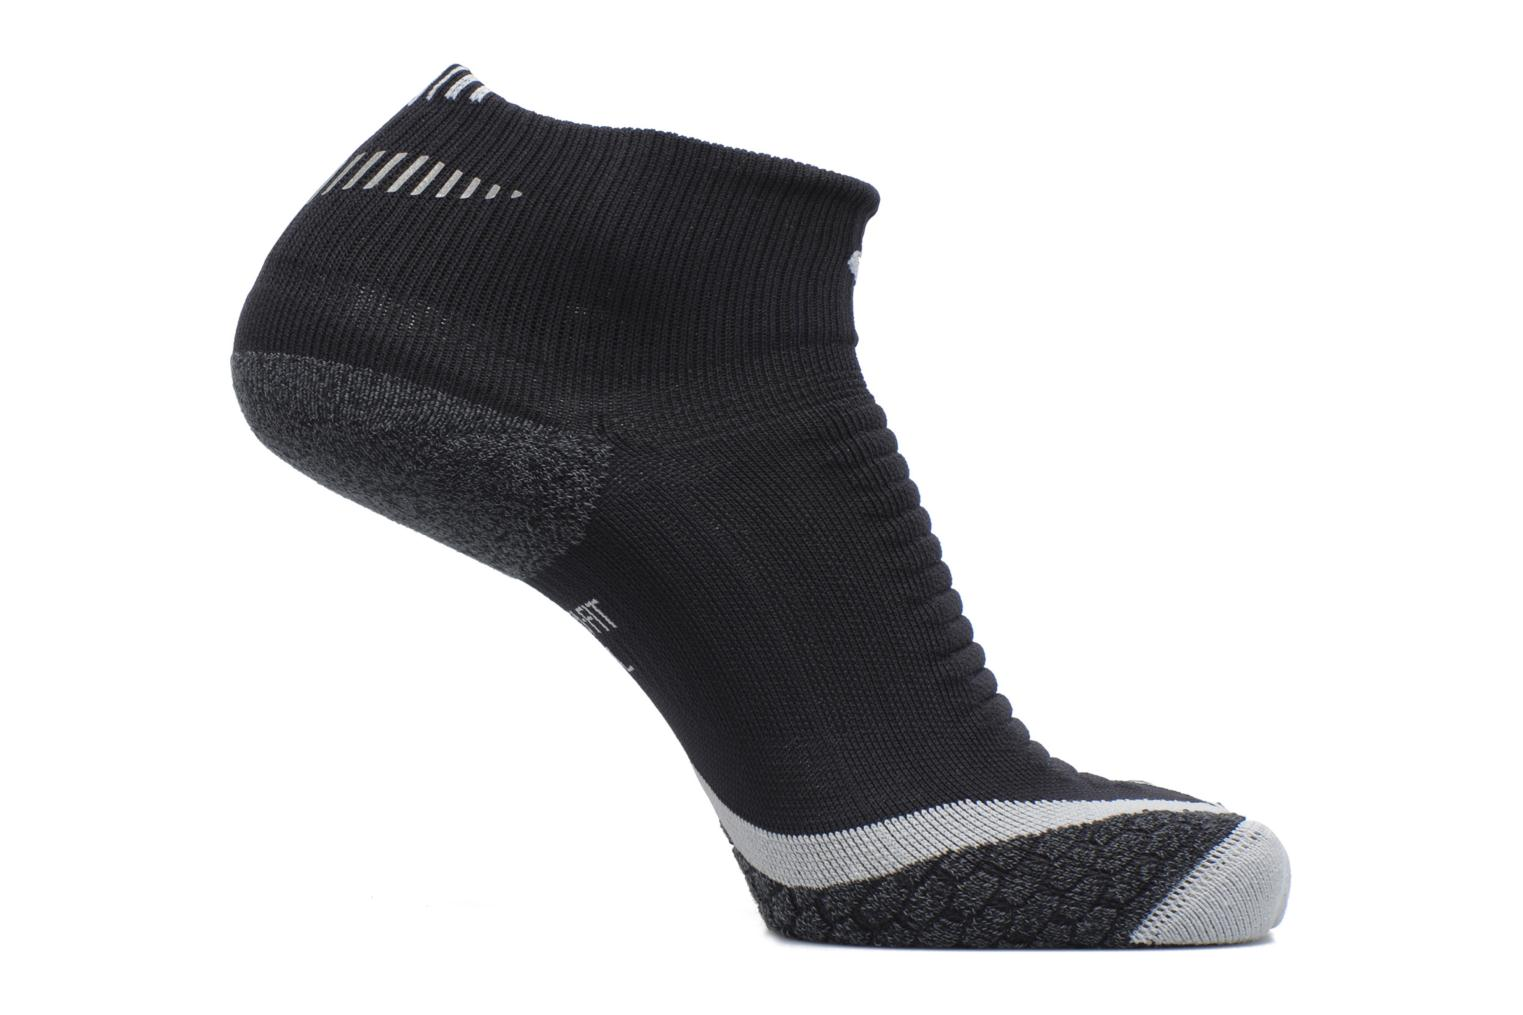 Nike Elite Cushion Quarter Running Sock BLACKWOLF GREY(WOLF GREY)